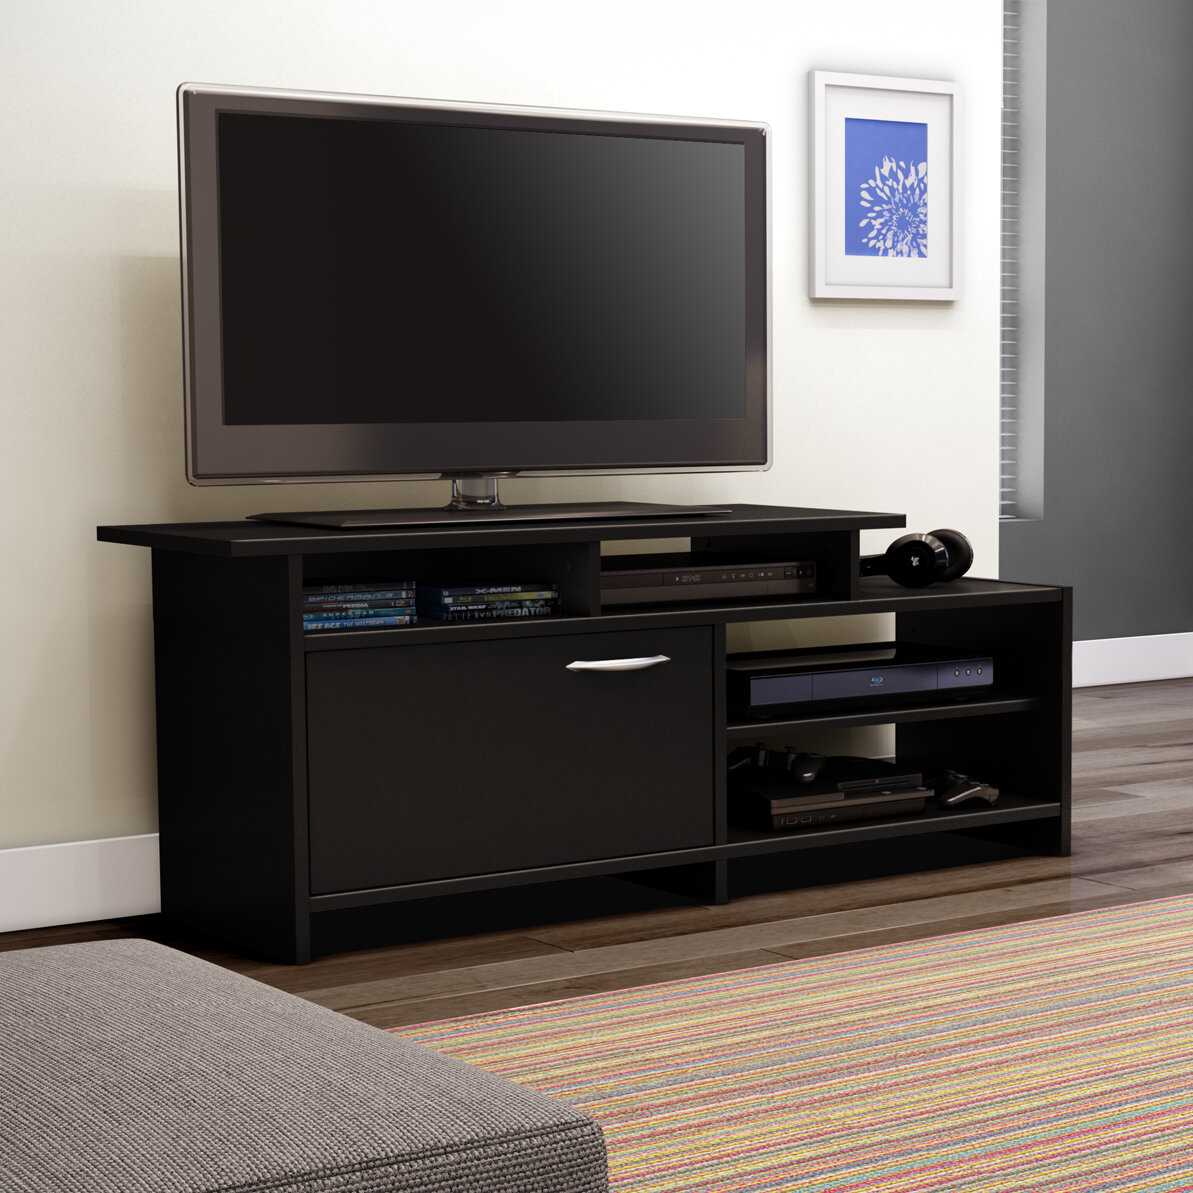 black tv stand 60 inch flat screen entertainment center contemporary elegant new ebay. Black Bedroom Furniture Sets. Home Design Ideas